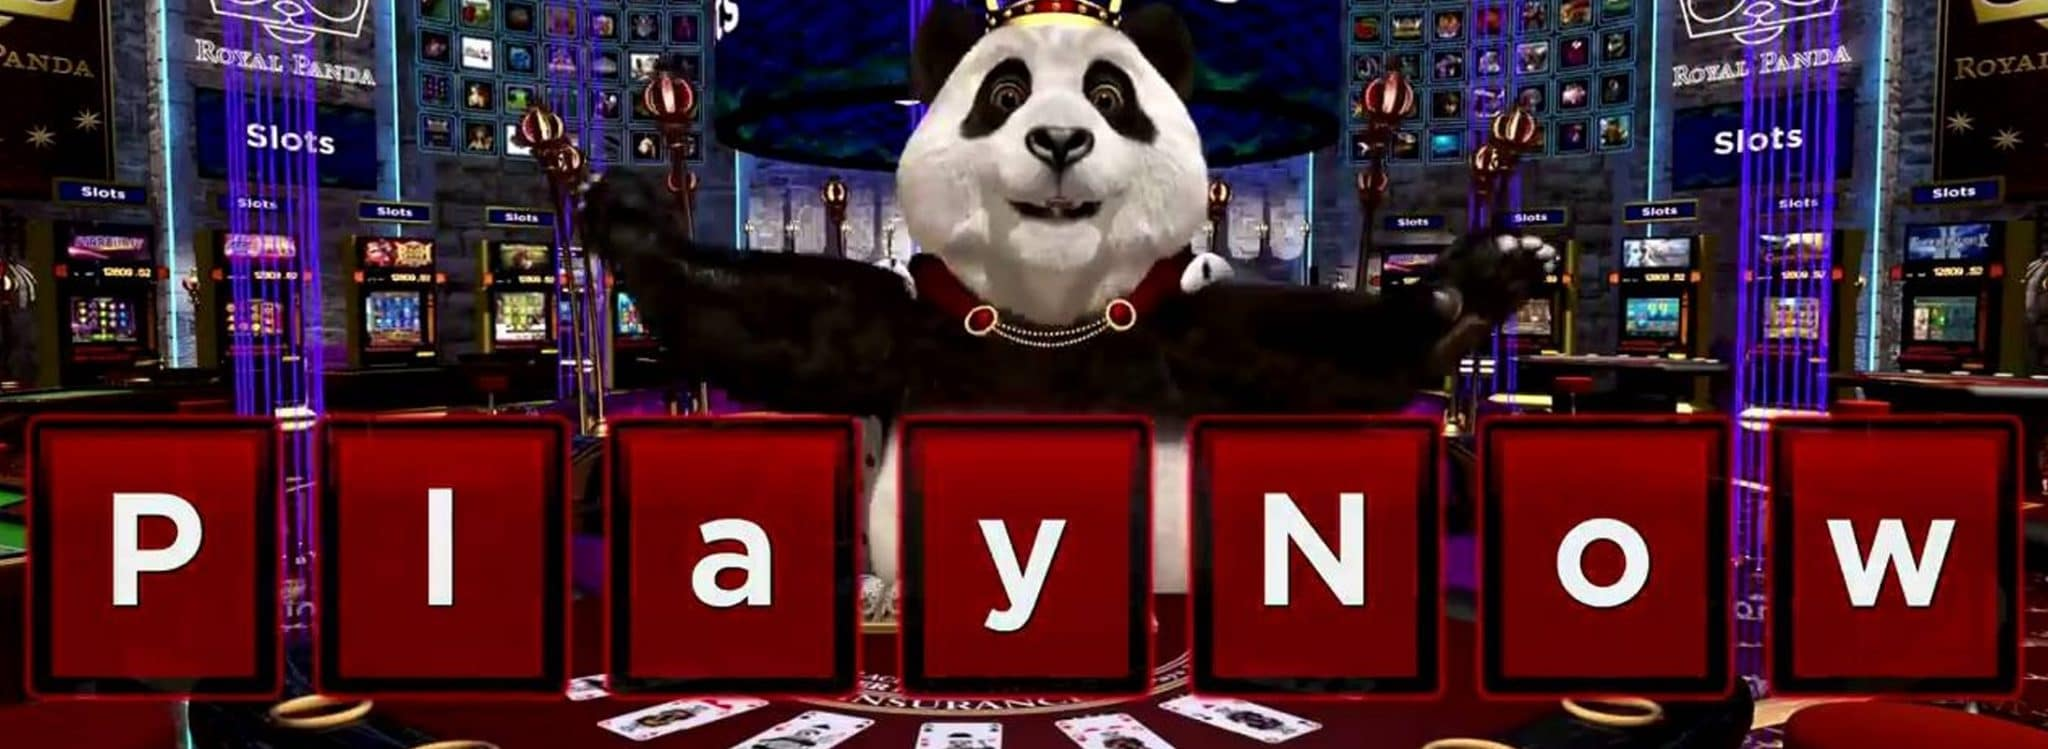 Claim Free Spins On An Epic Royal Panda Journey element01 - CasinoTop